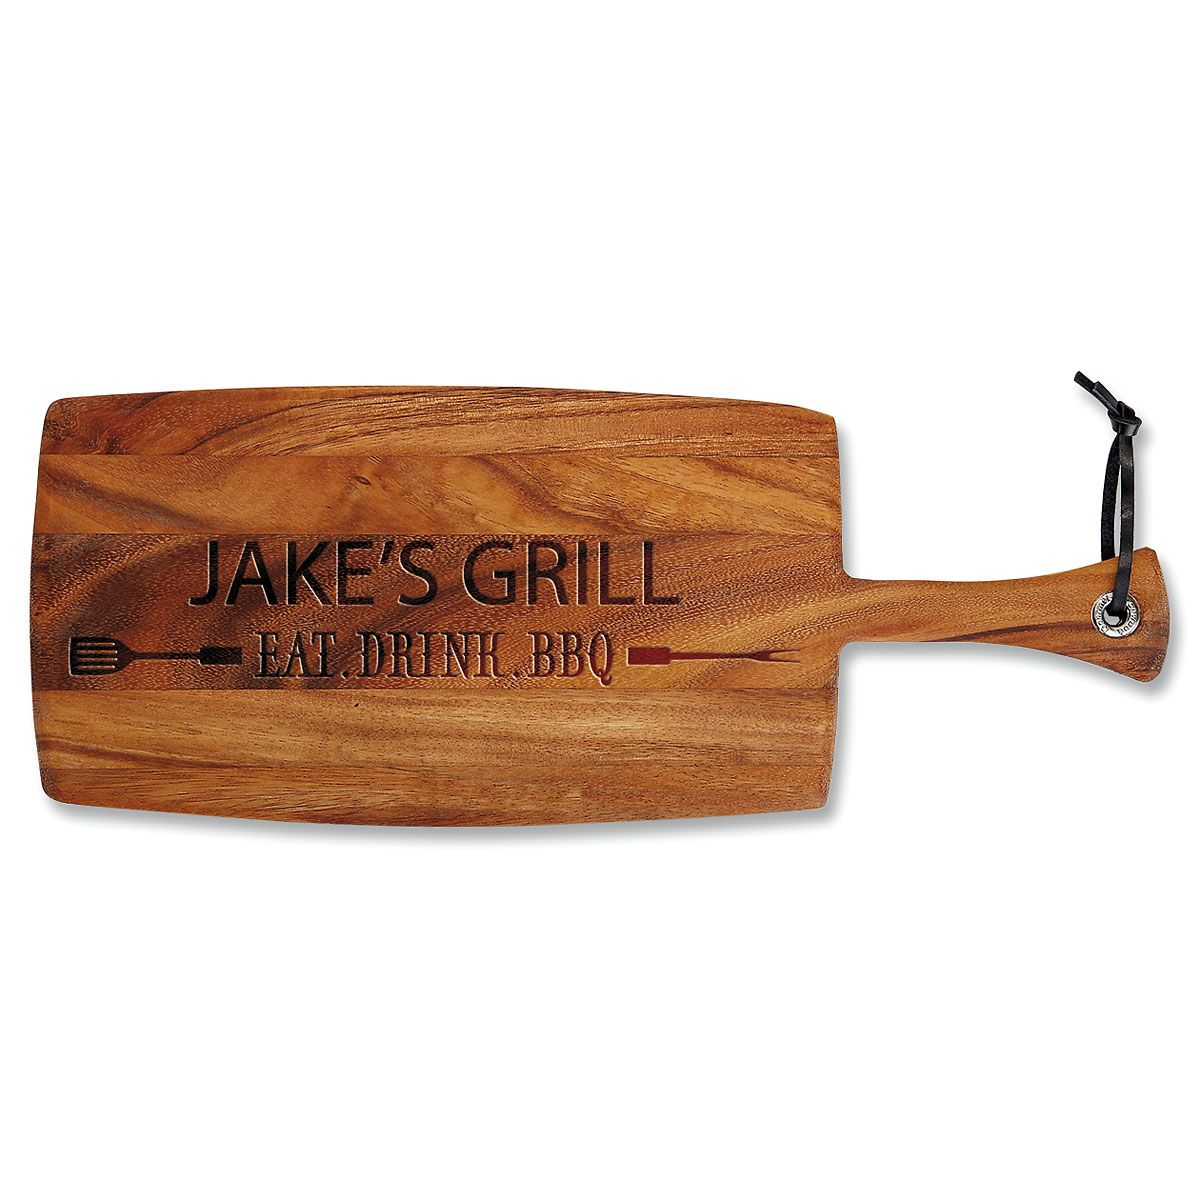 Eat, Drink, BBQ Engraved Acacia Wood Paddle Cutting Board